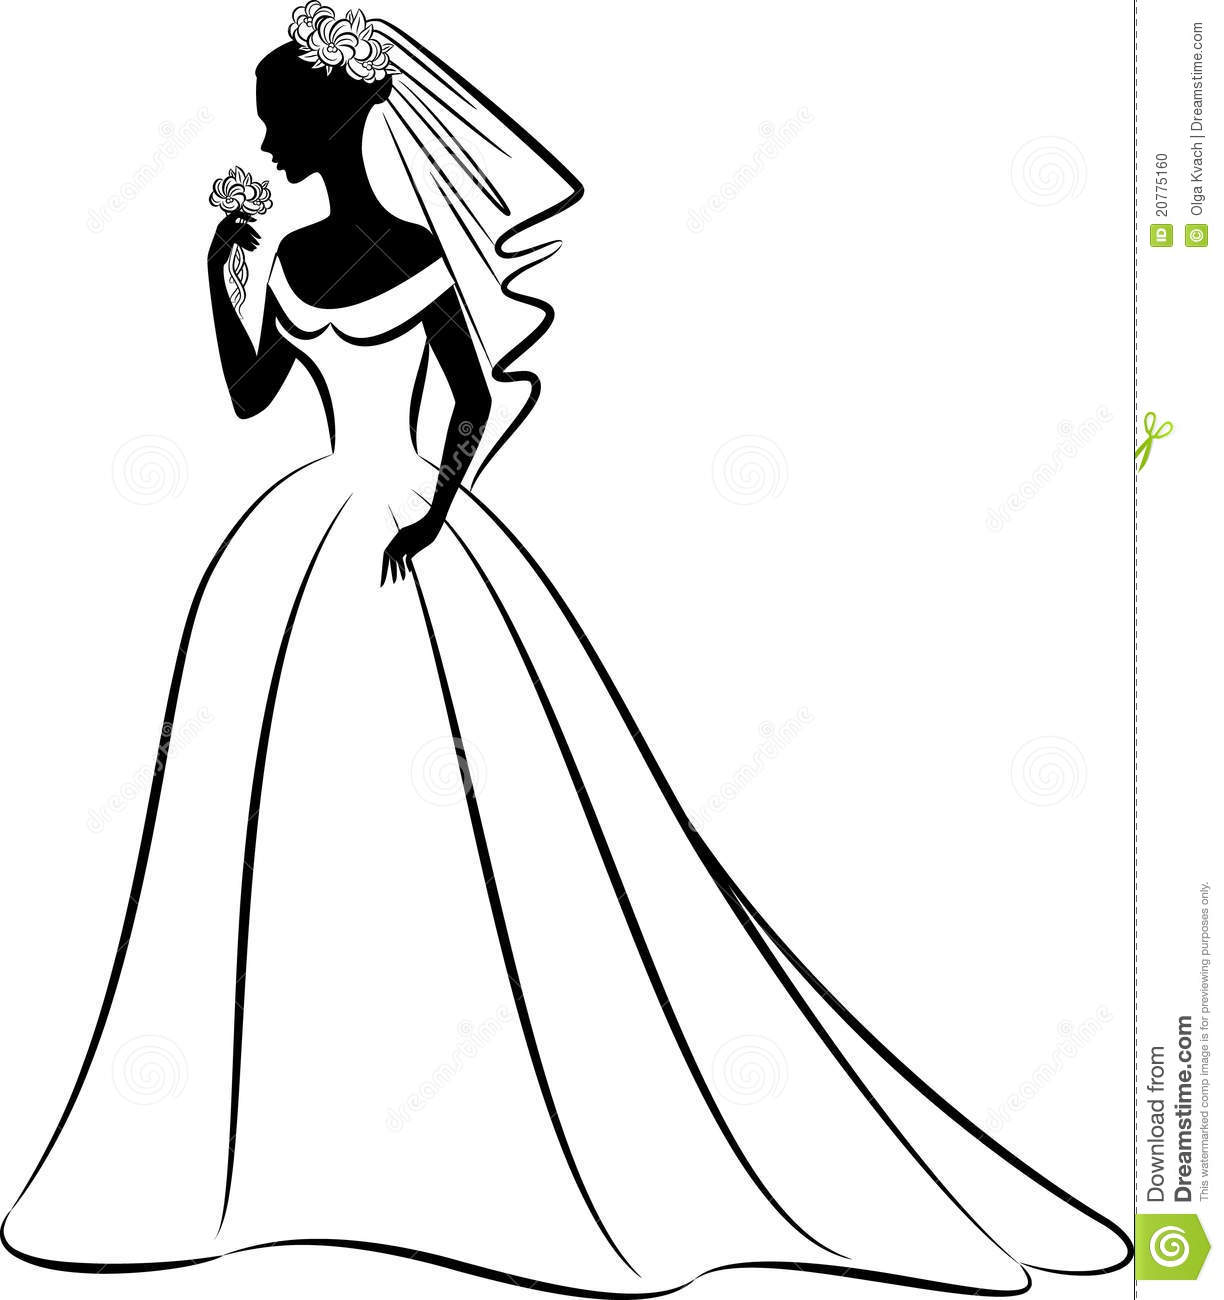 hight resolution of wedding dress clipart png gallery